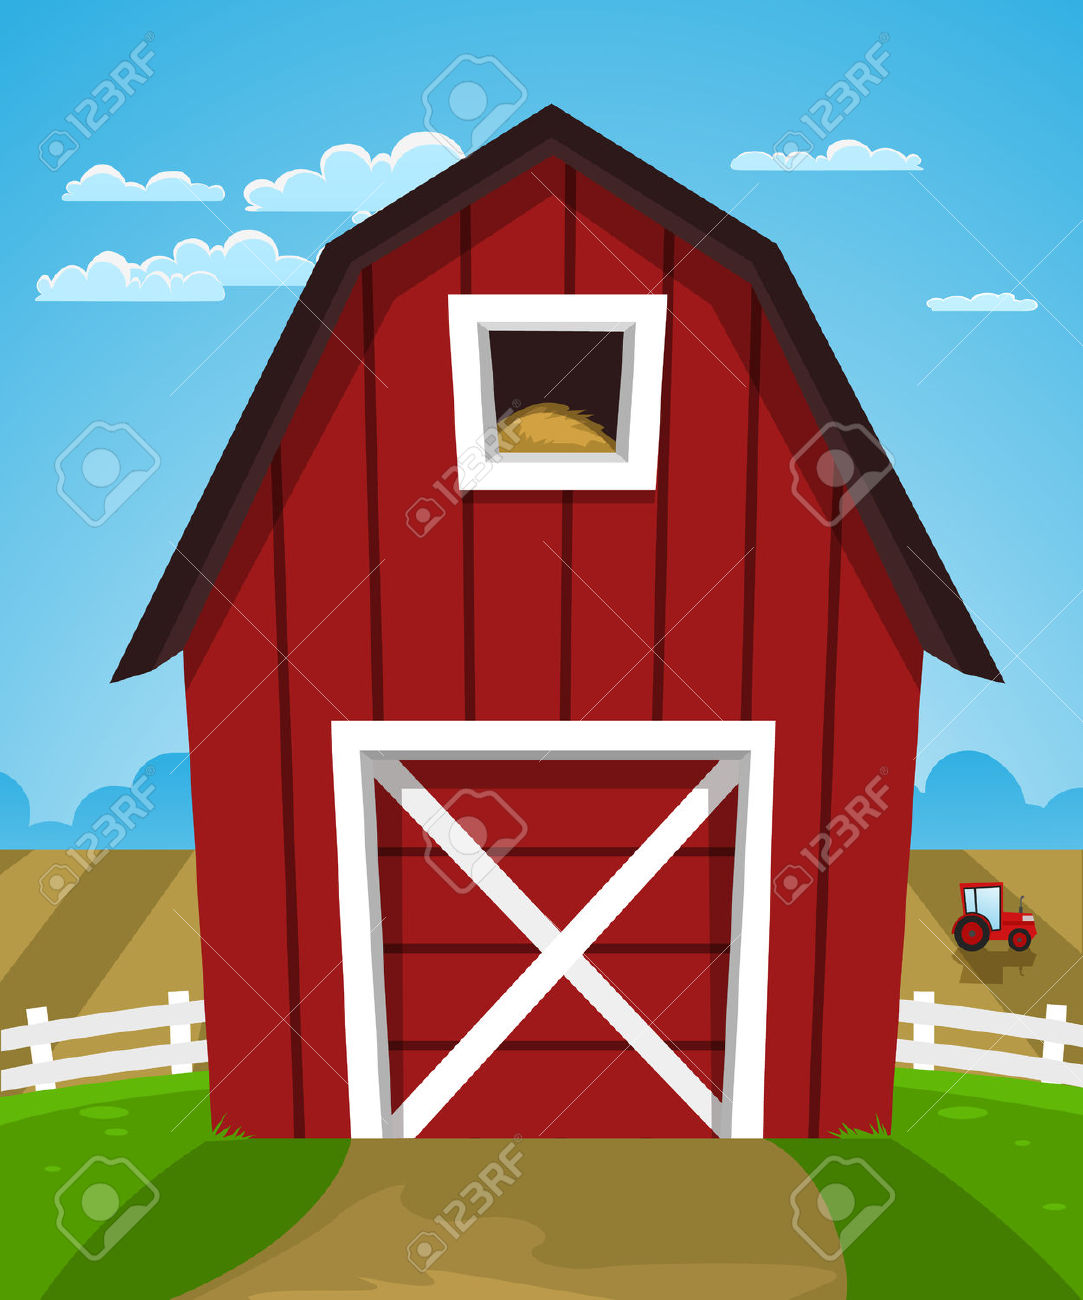 Cartoon Illustration Of Red Farm Barn With Tractor Royalty Free.